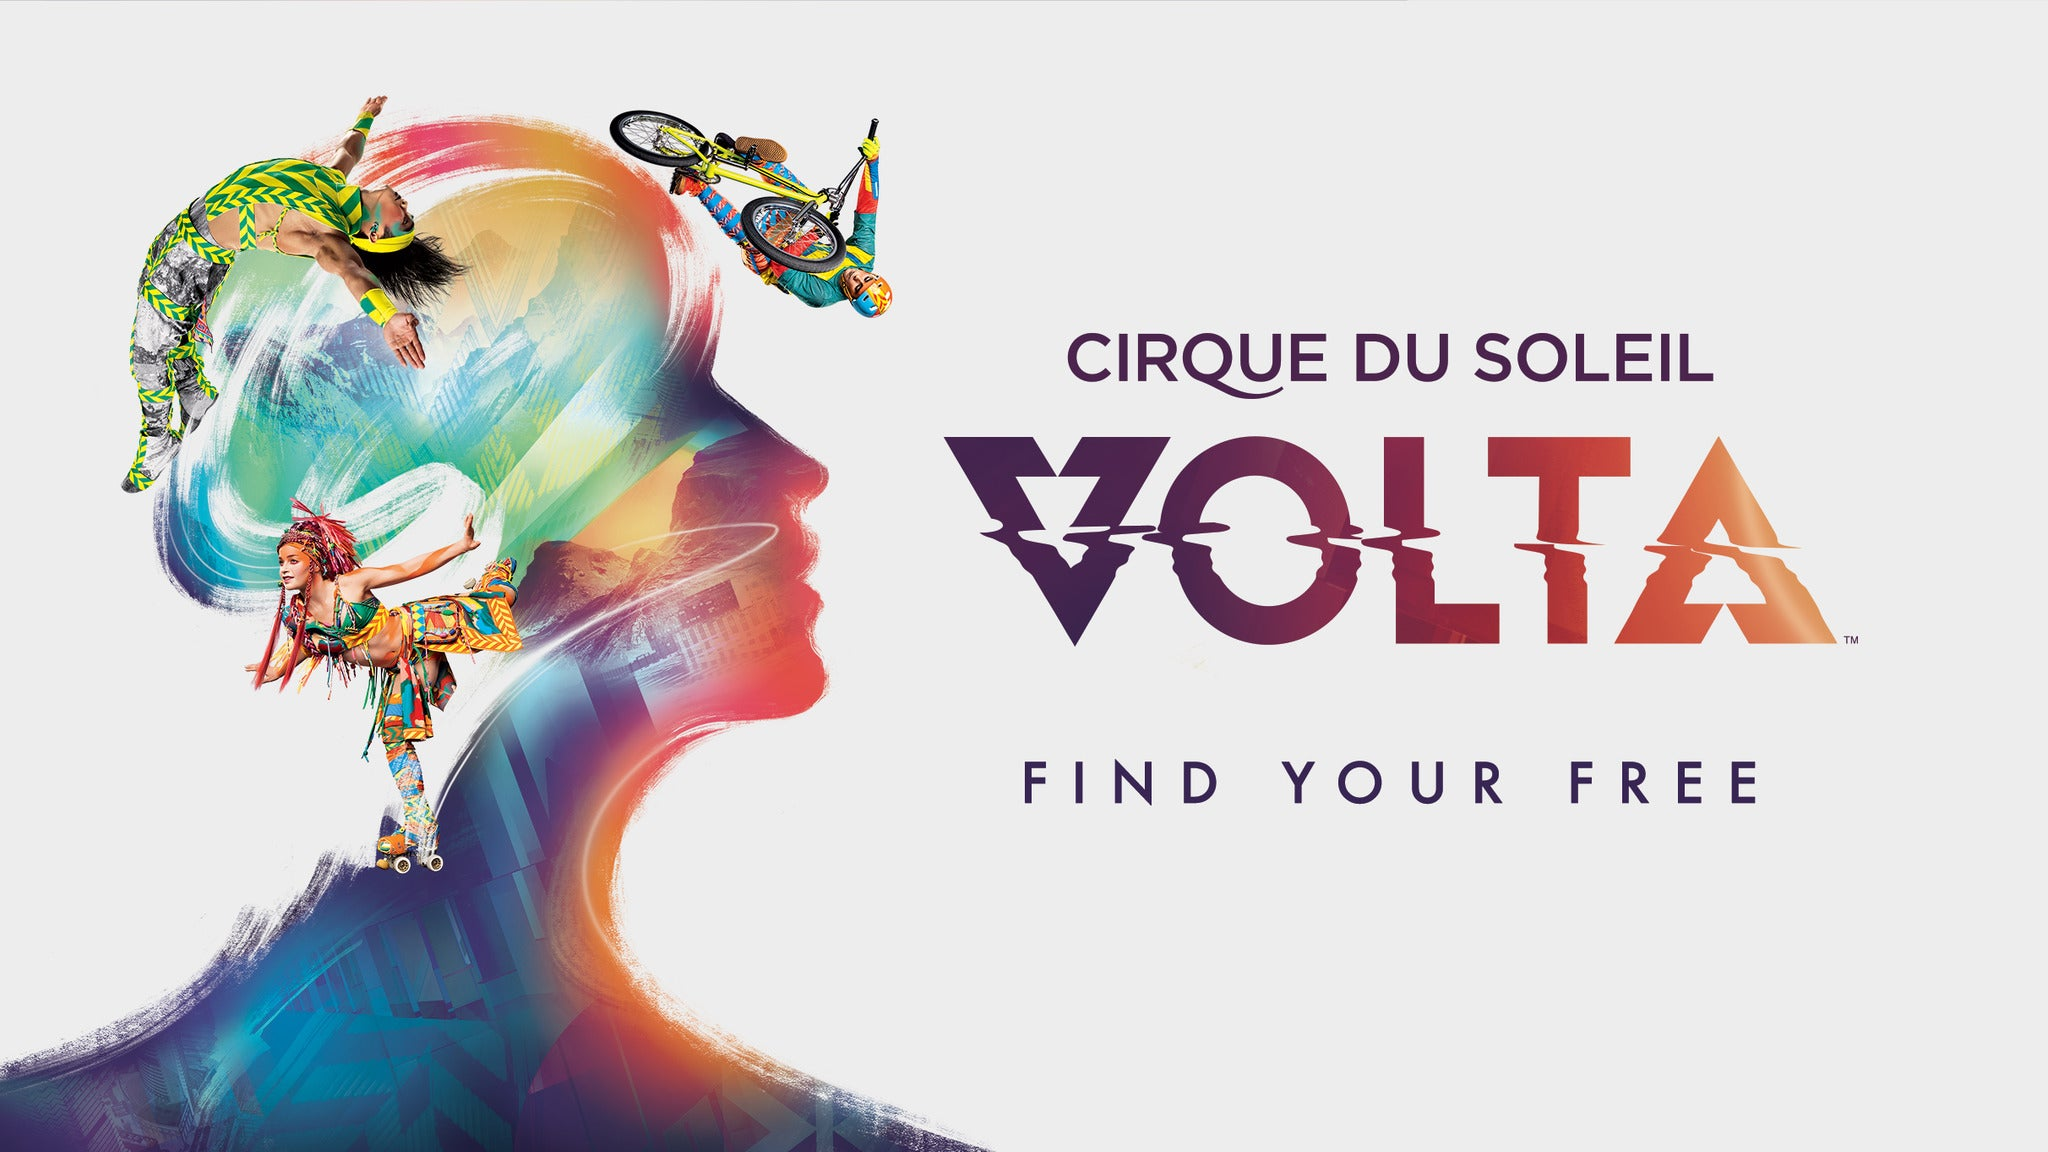 Cirque du Soleil: Volta at Grand Chapiteau at Soldier Field - Chicago, IL 60605